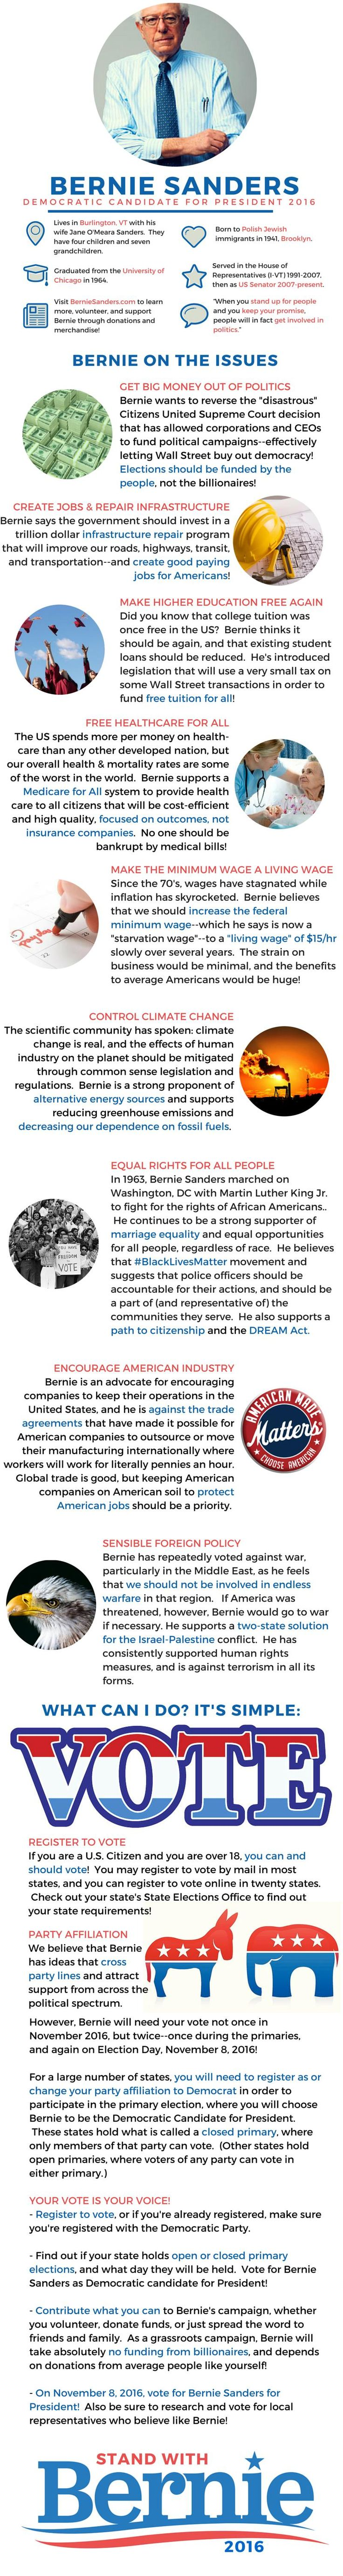 Just a few things that you may not know about Bernie. Get familiar with the man who has been, for 30+ years, fighting on our side all along. #feeltheBERN2016